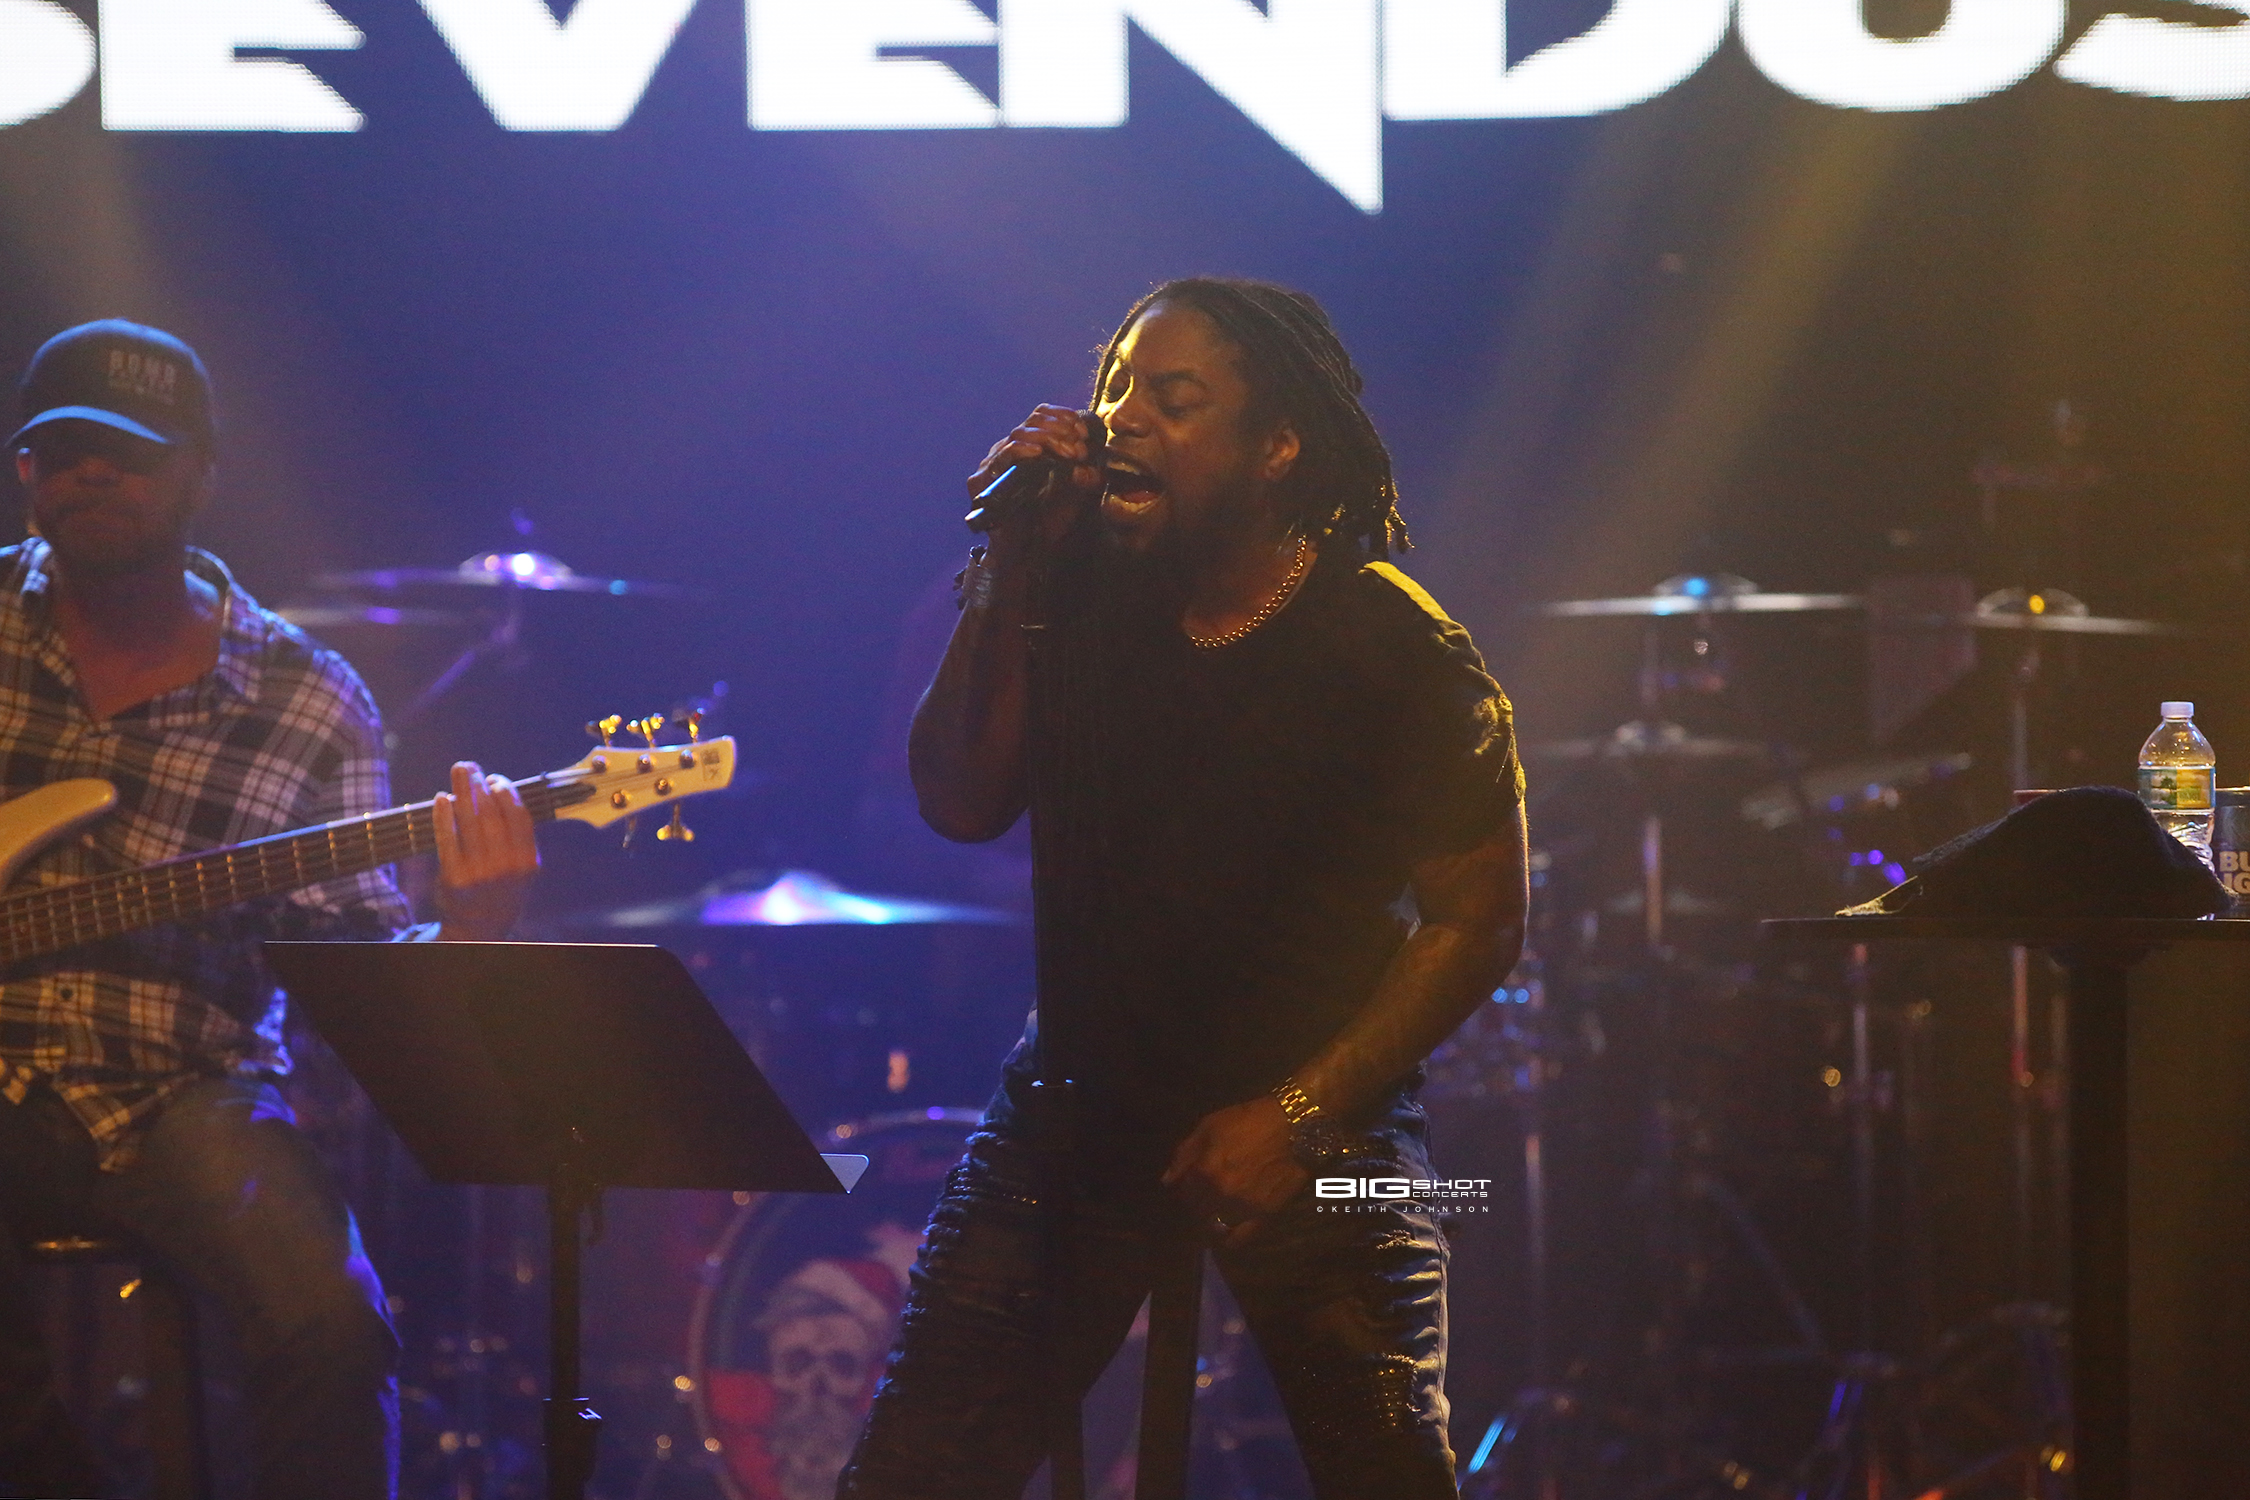 Sevendust Concert at Revolution Live